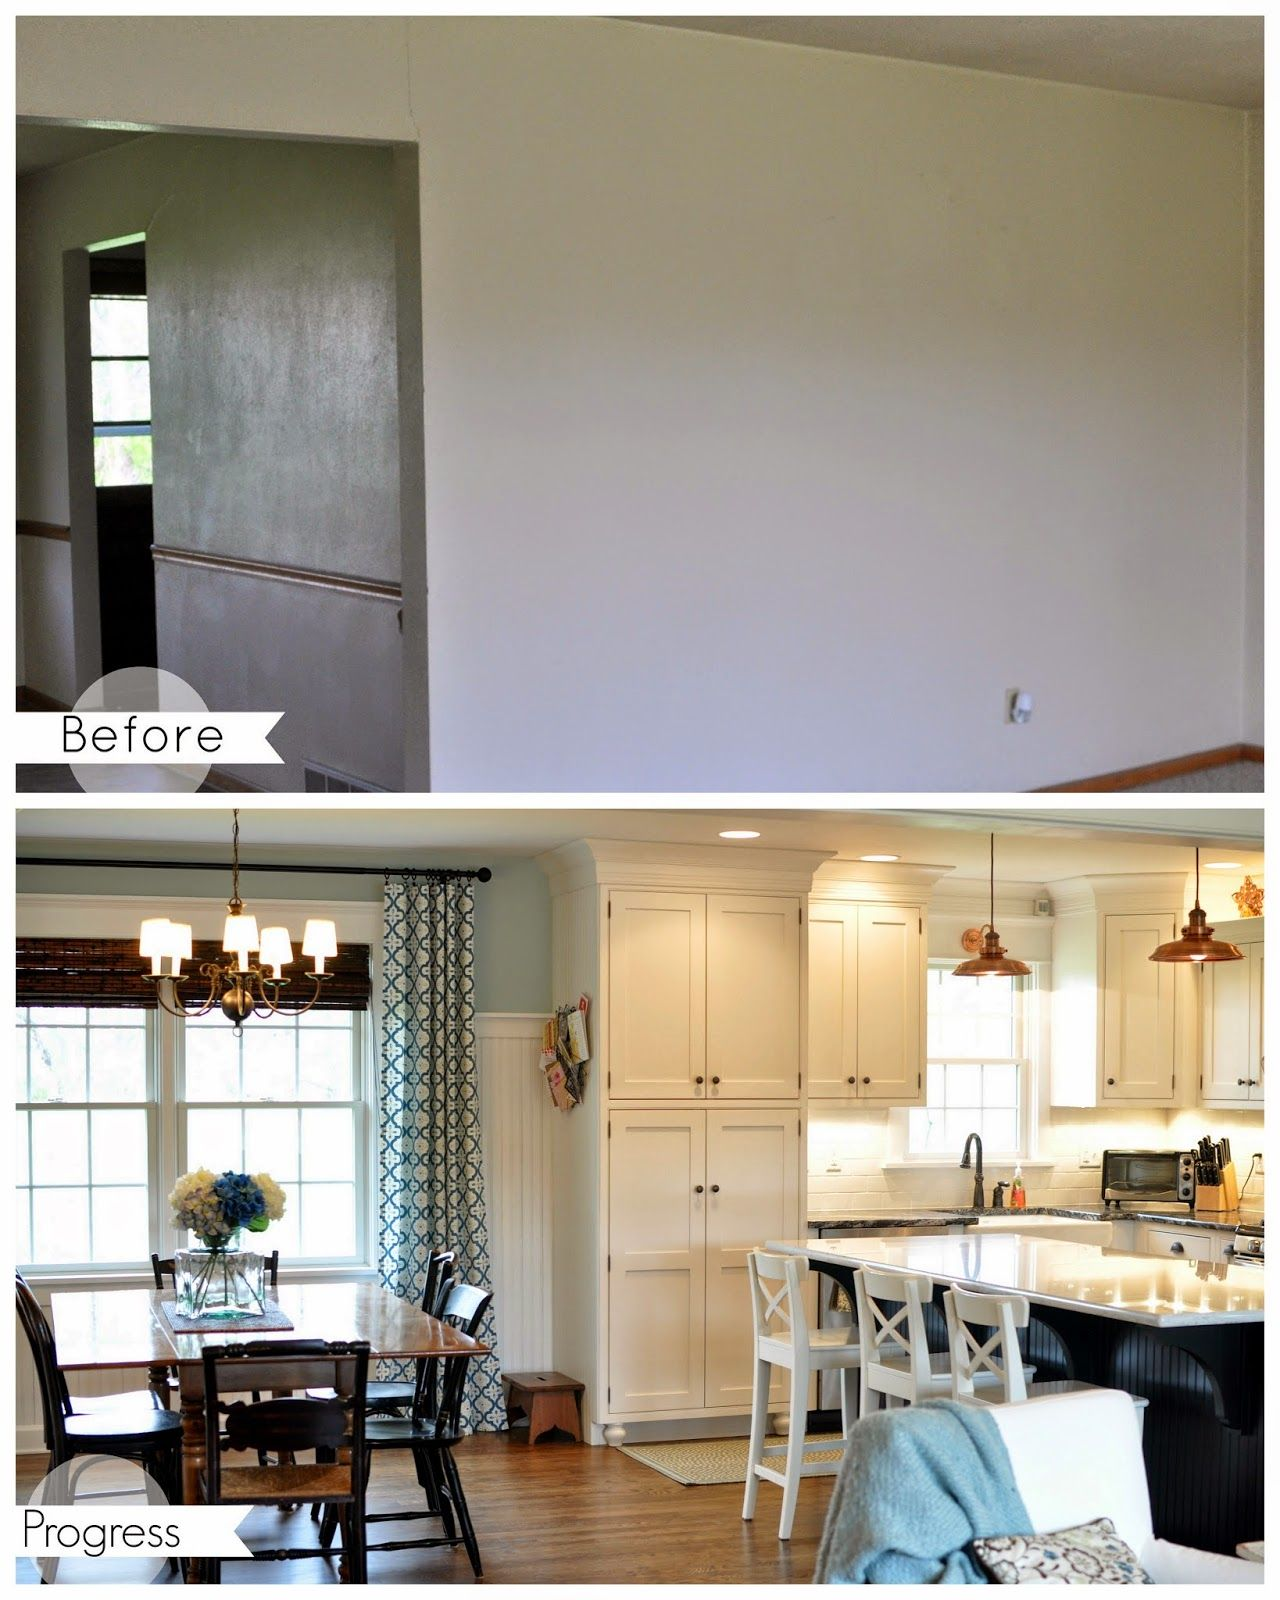 Before And After House Tour: Knocking Down Two Walls